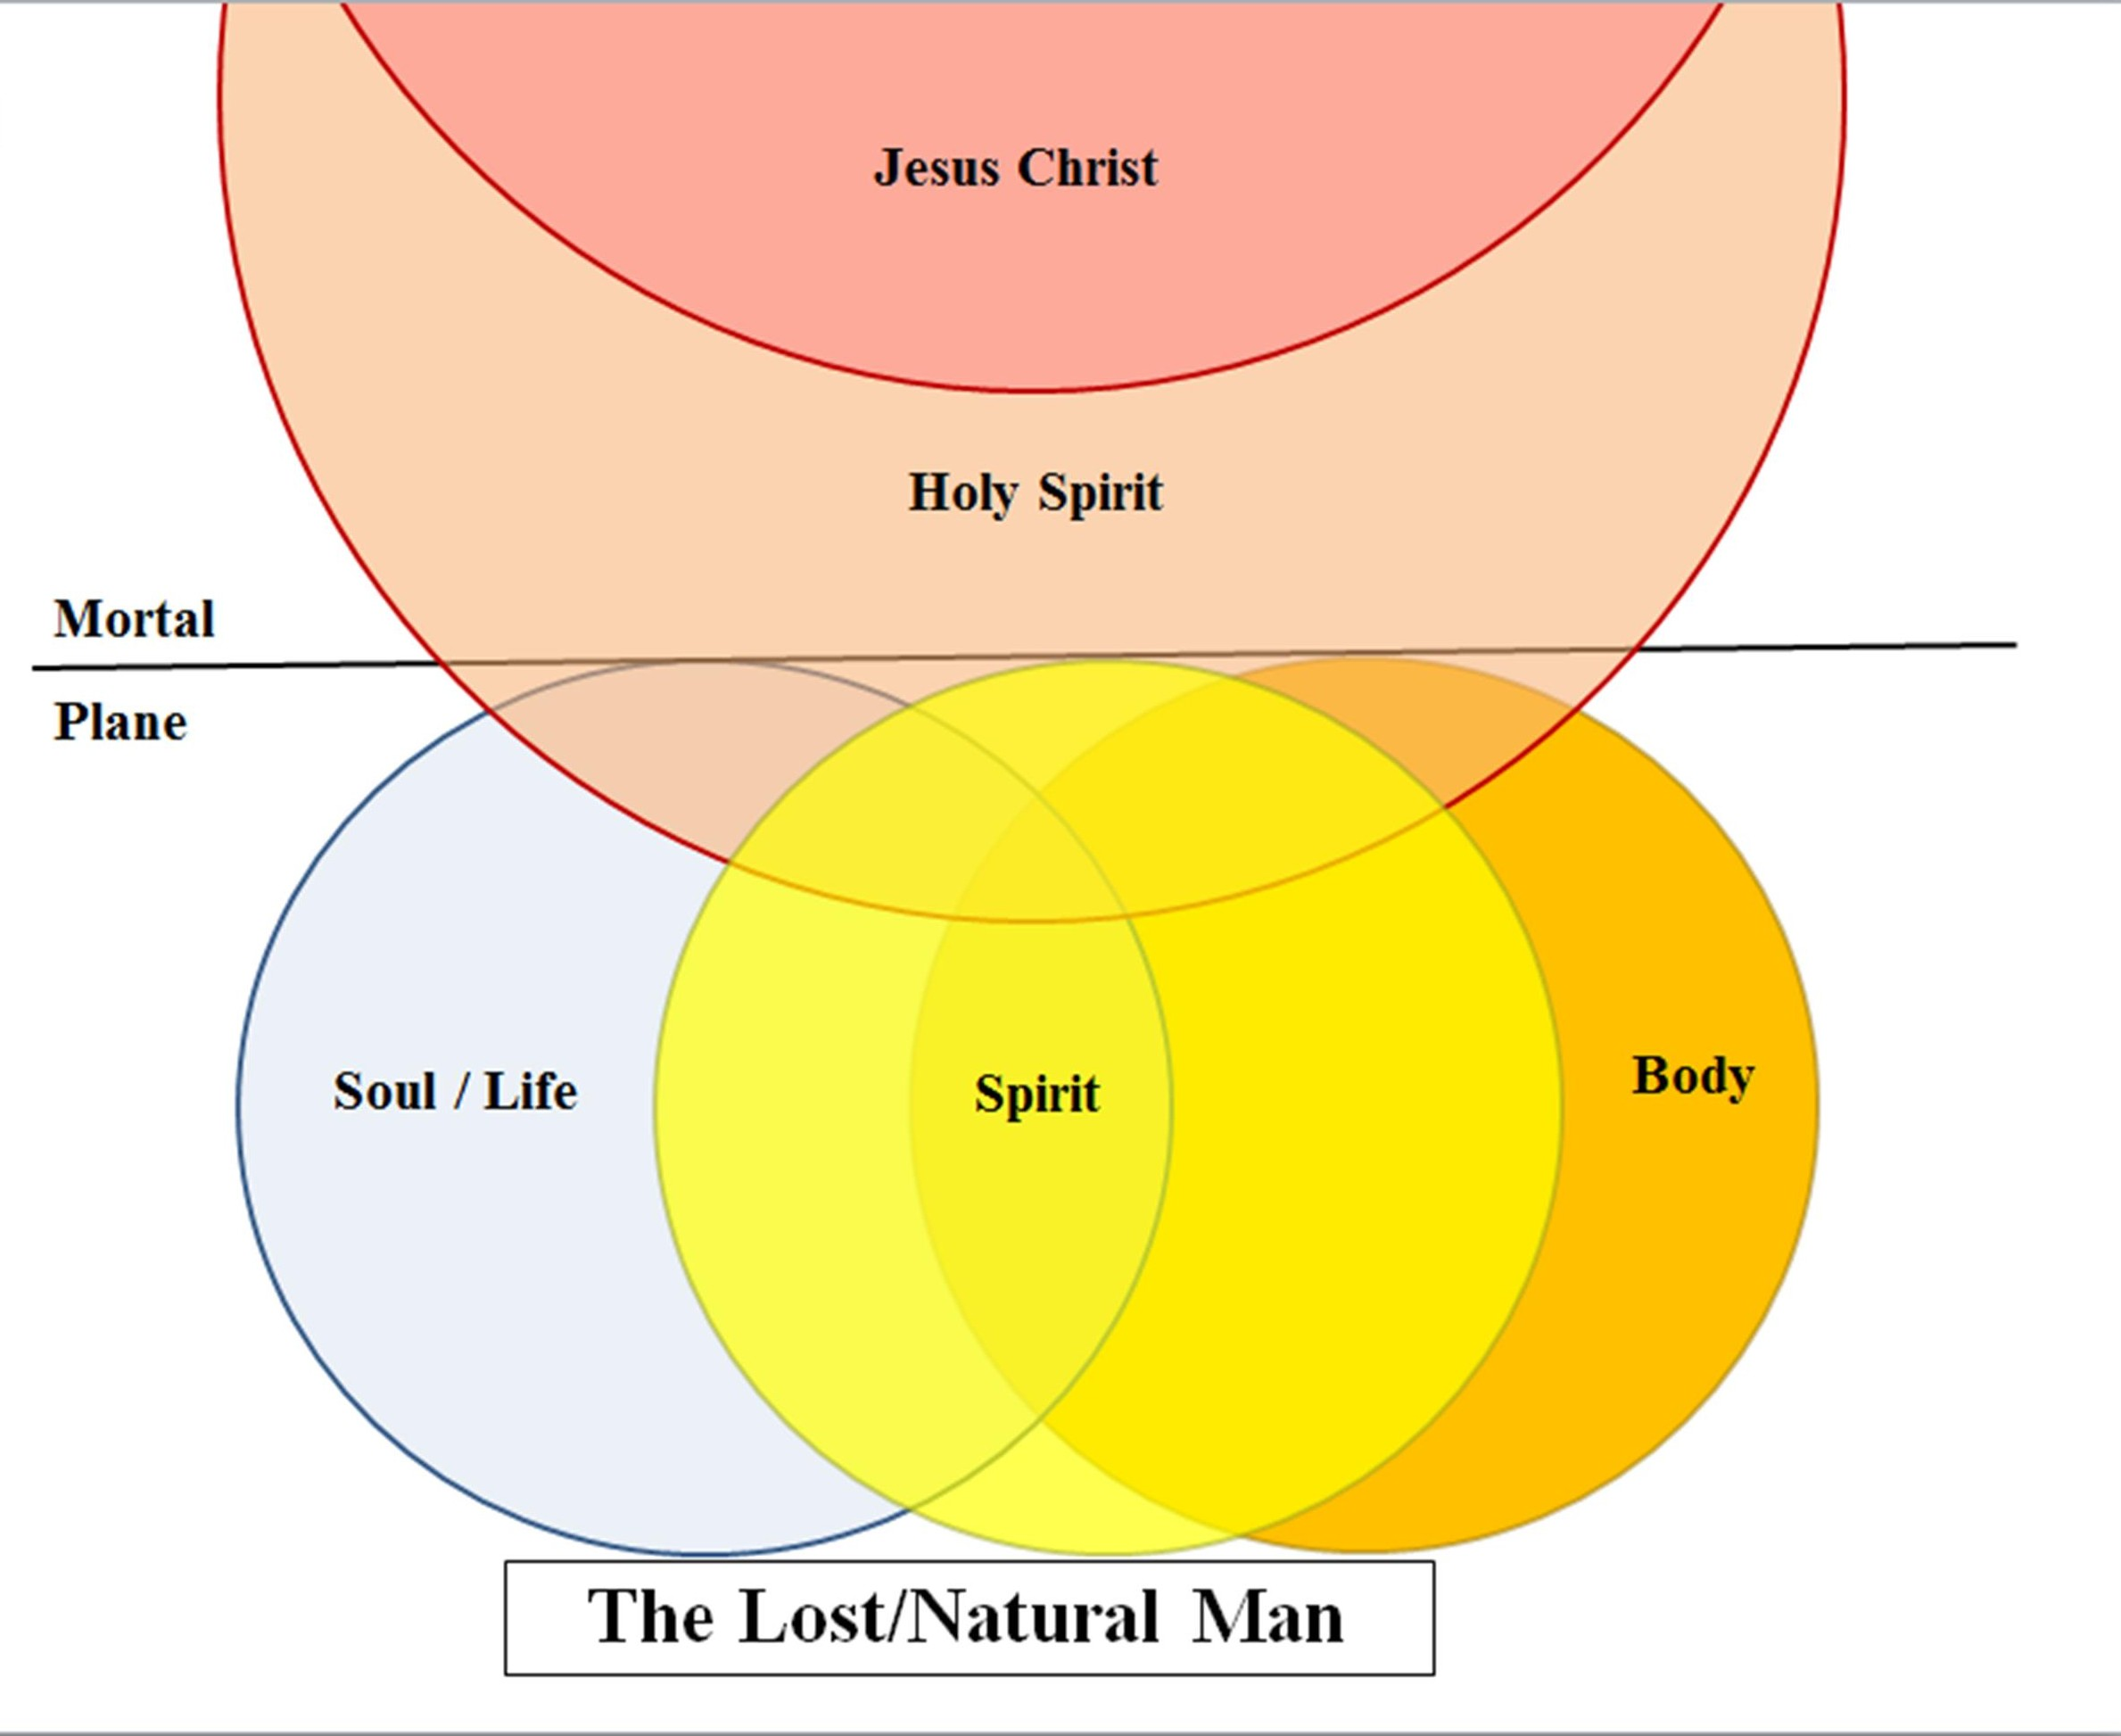 The Spiritual Man Lost